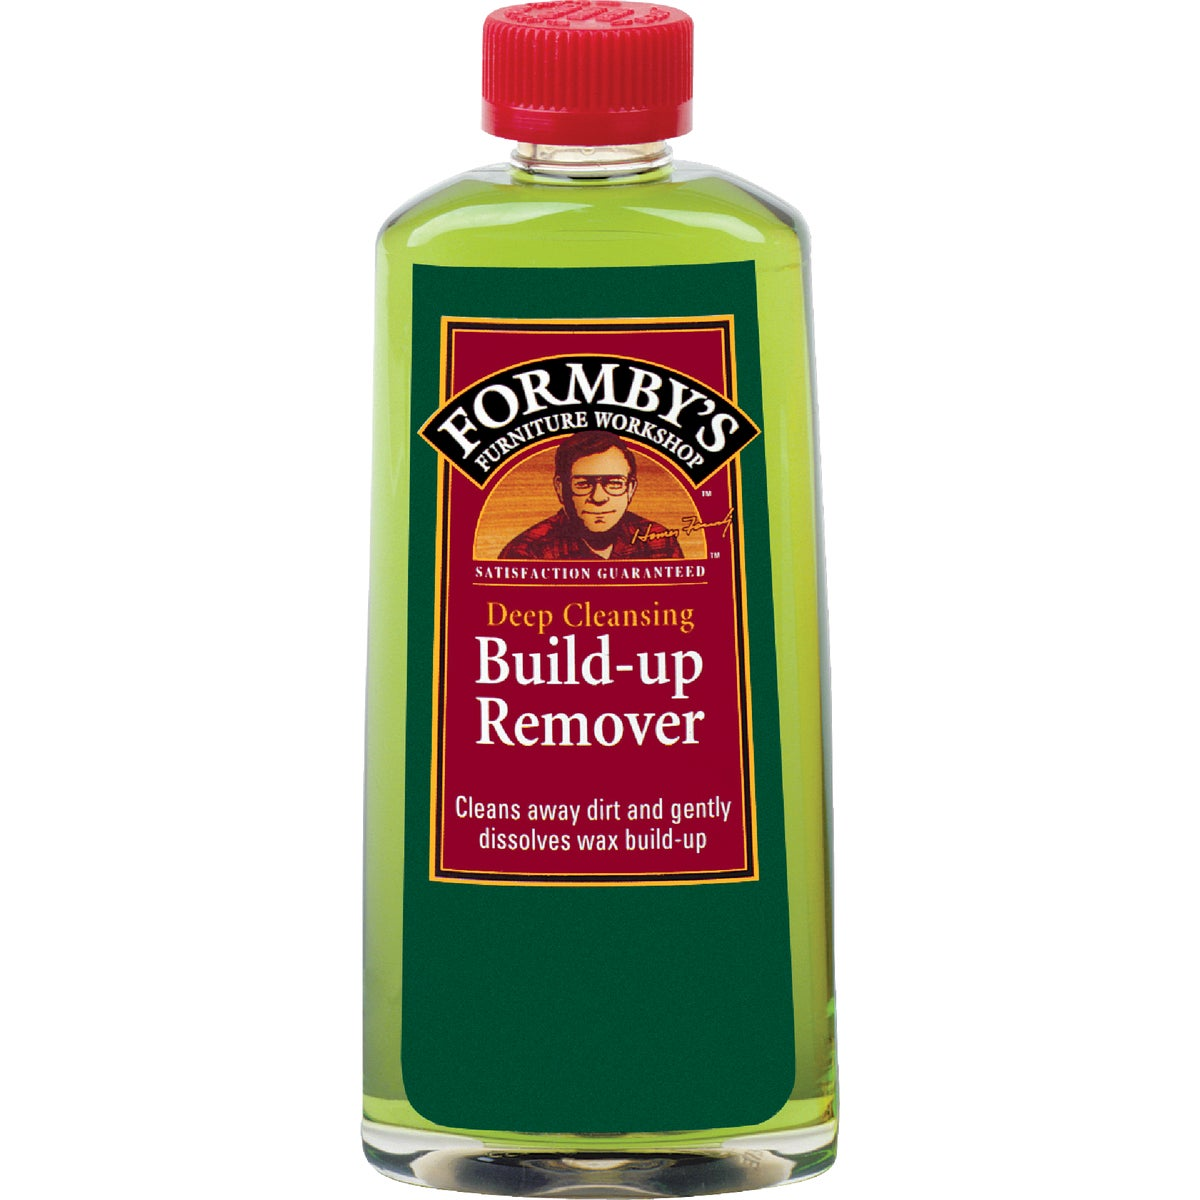 8OZ BUILD-UP REMOVER - 30016 by Minwax Company